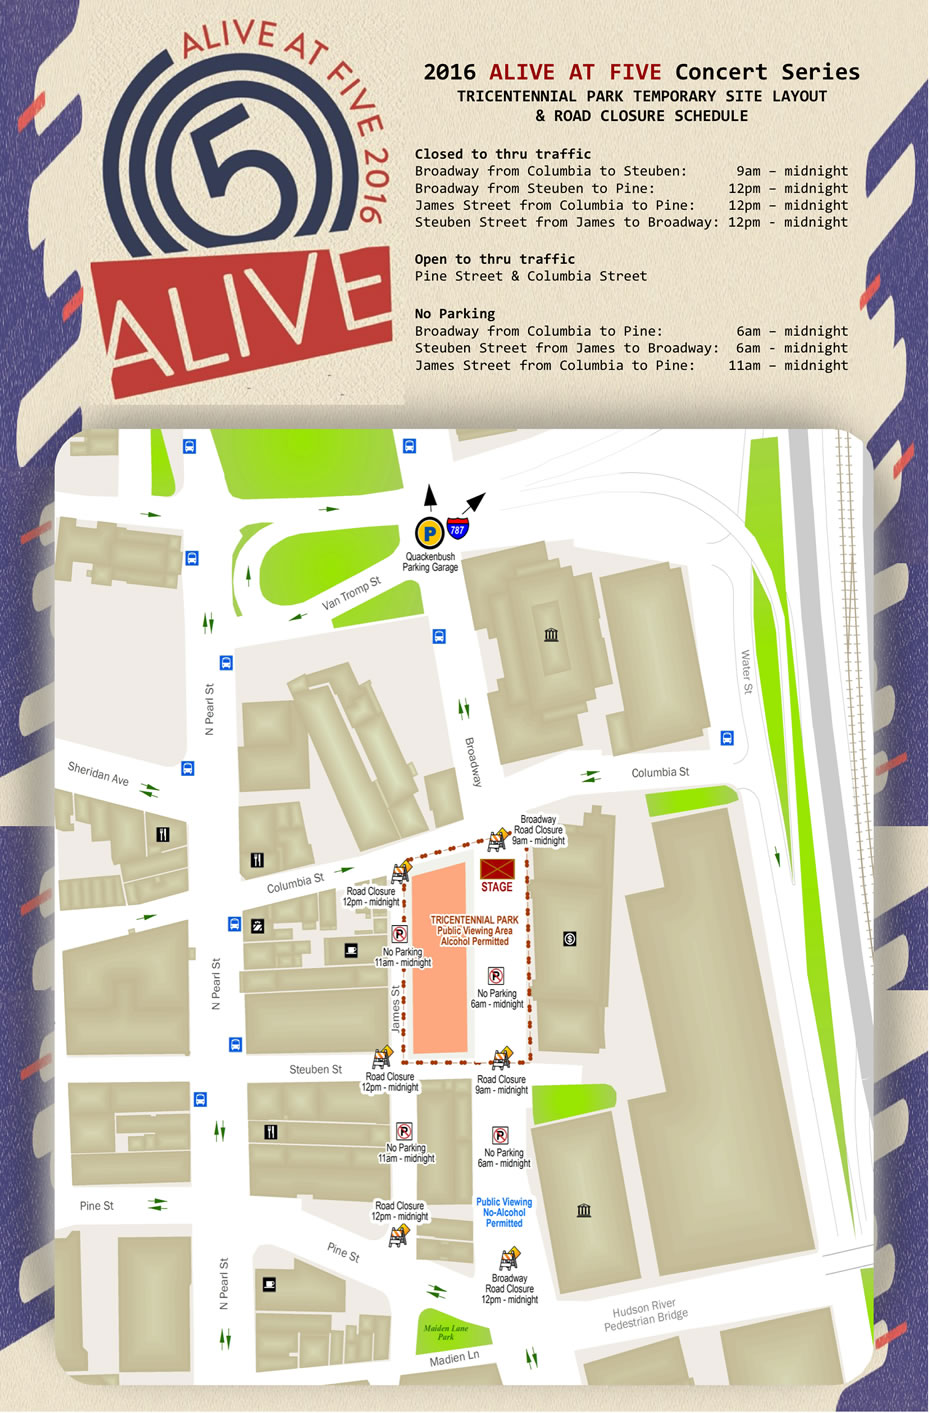 Alive at Five 2016 street map